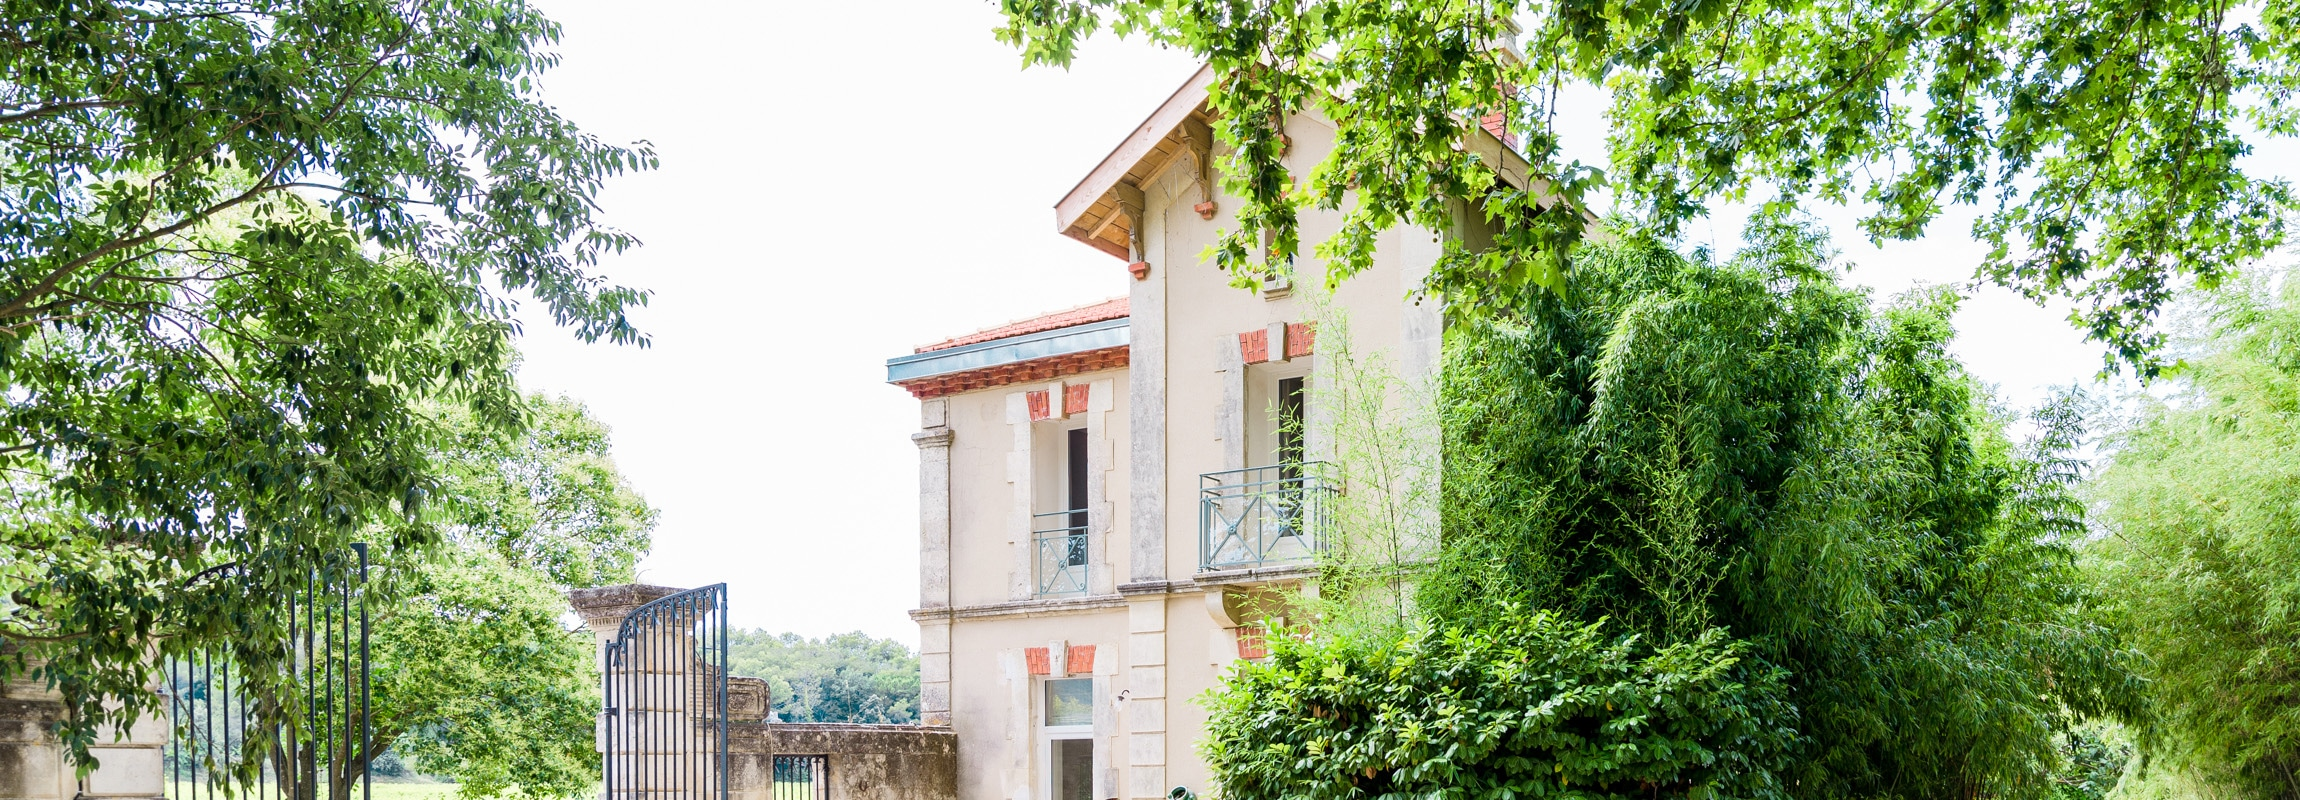 La Maison, holiday house in Provence